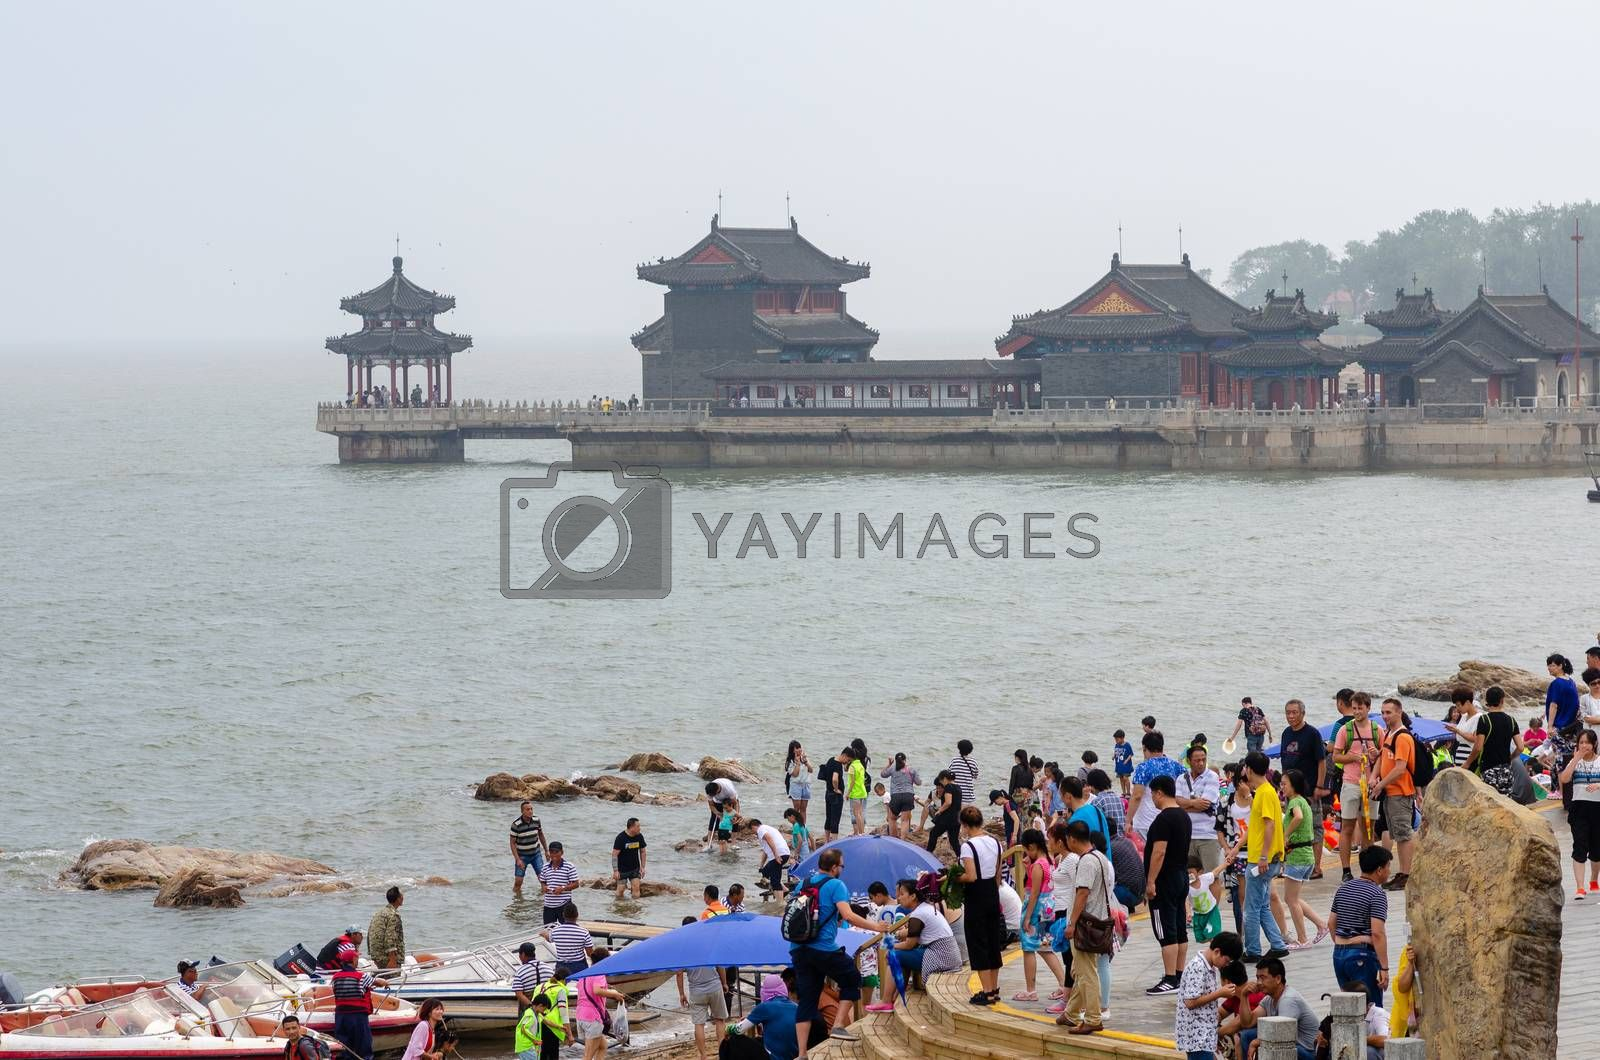 Qinhuangdao / China - July 23, 2016: Laolongtou Great Wall (Old Dragon's Head) scenic area, where the Great Wall of China meets the Bohai Sea